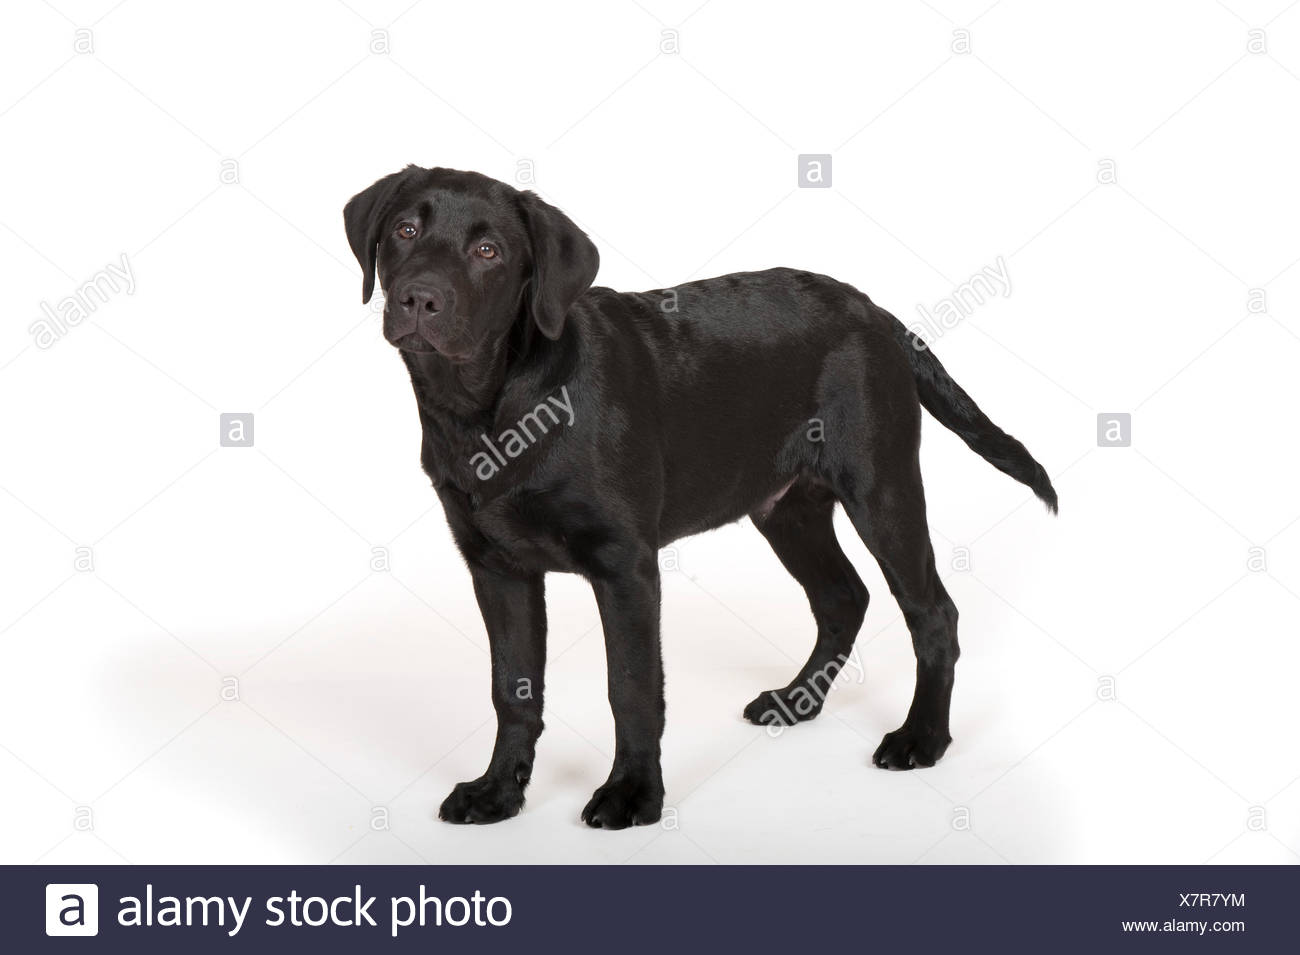 Labrador Dog 4 Months Old In Studio Uk Black Colour Puppy Standing Looking Alert Stock Photo Alamy